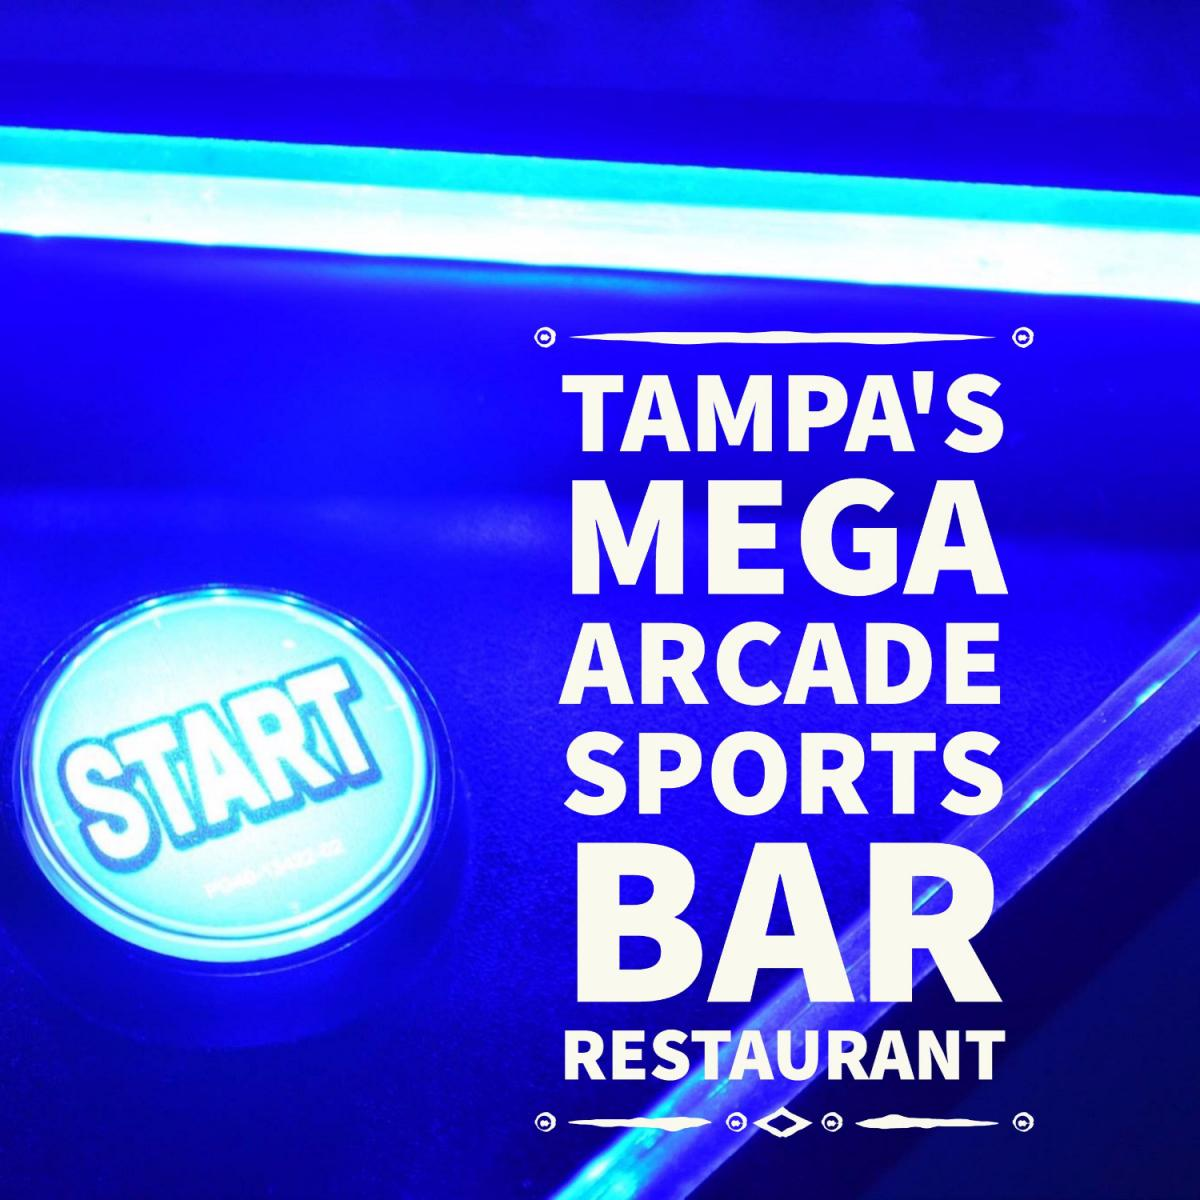 GameTime | A Fun Mega Arcade Sports Bar Restaurant in Tampa